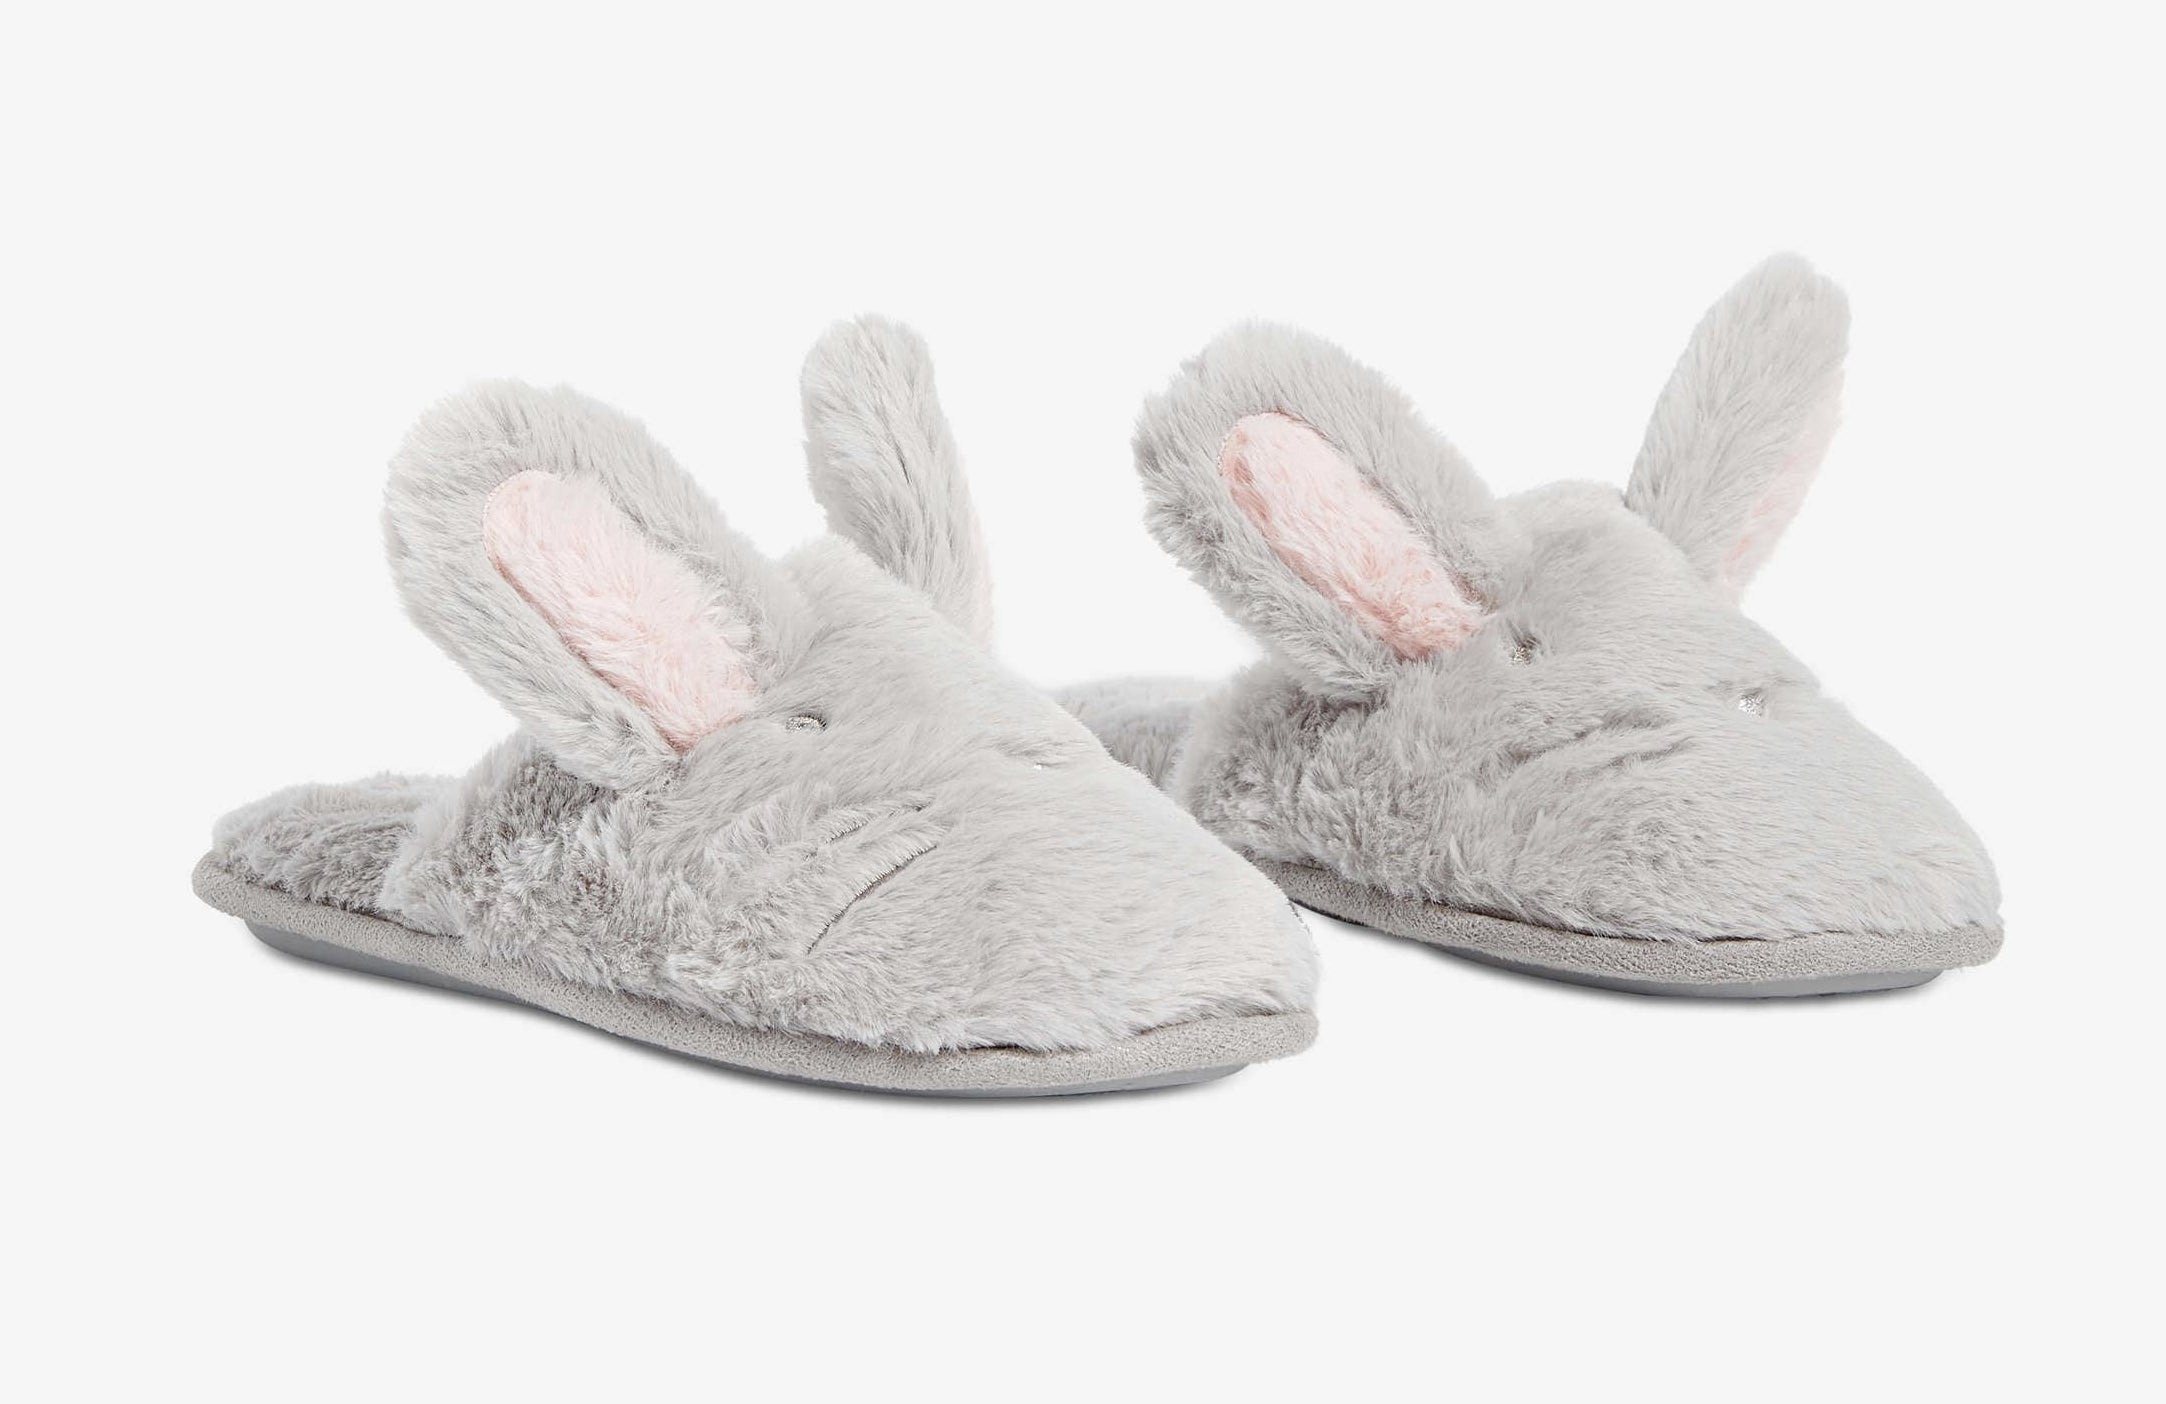 A pair of furry slippers with bunny ears